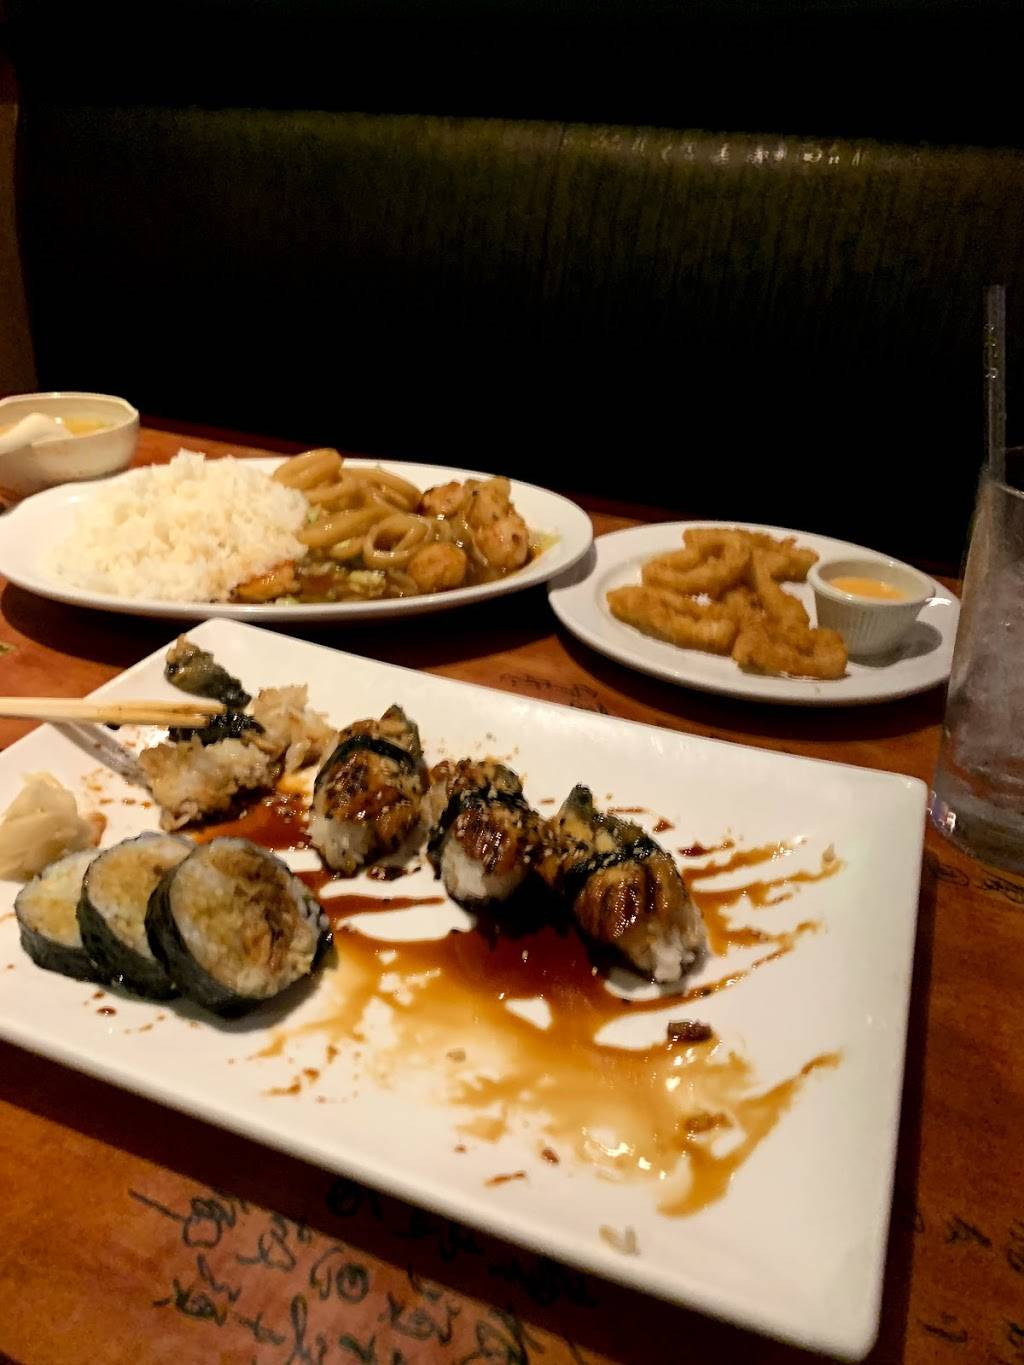 Kobe Japanese | restaurant | 506 Belle Terre Blvd, Laplace, LA 70068, USA | 9856528880 OR +1 985-652-8880